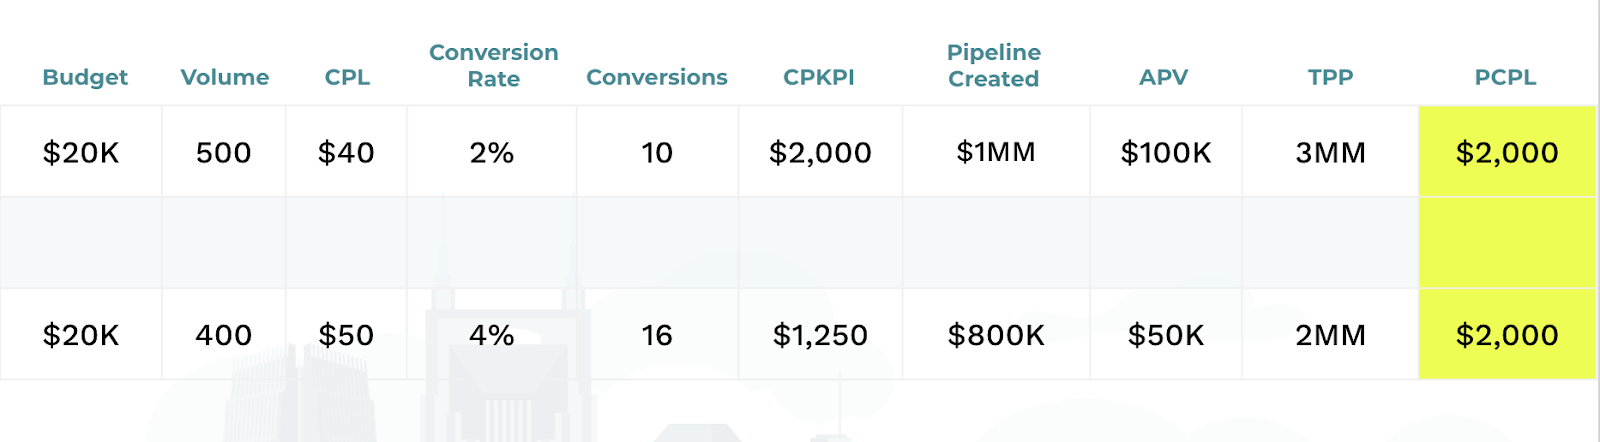 calculated pipeline created per lead of two programs.